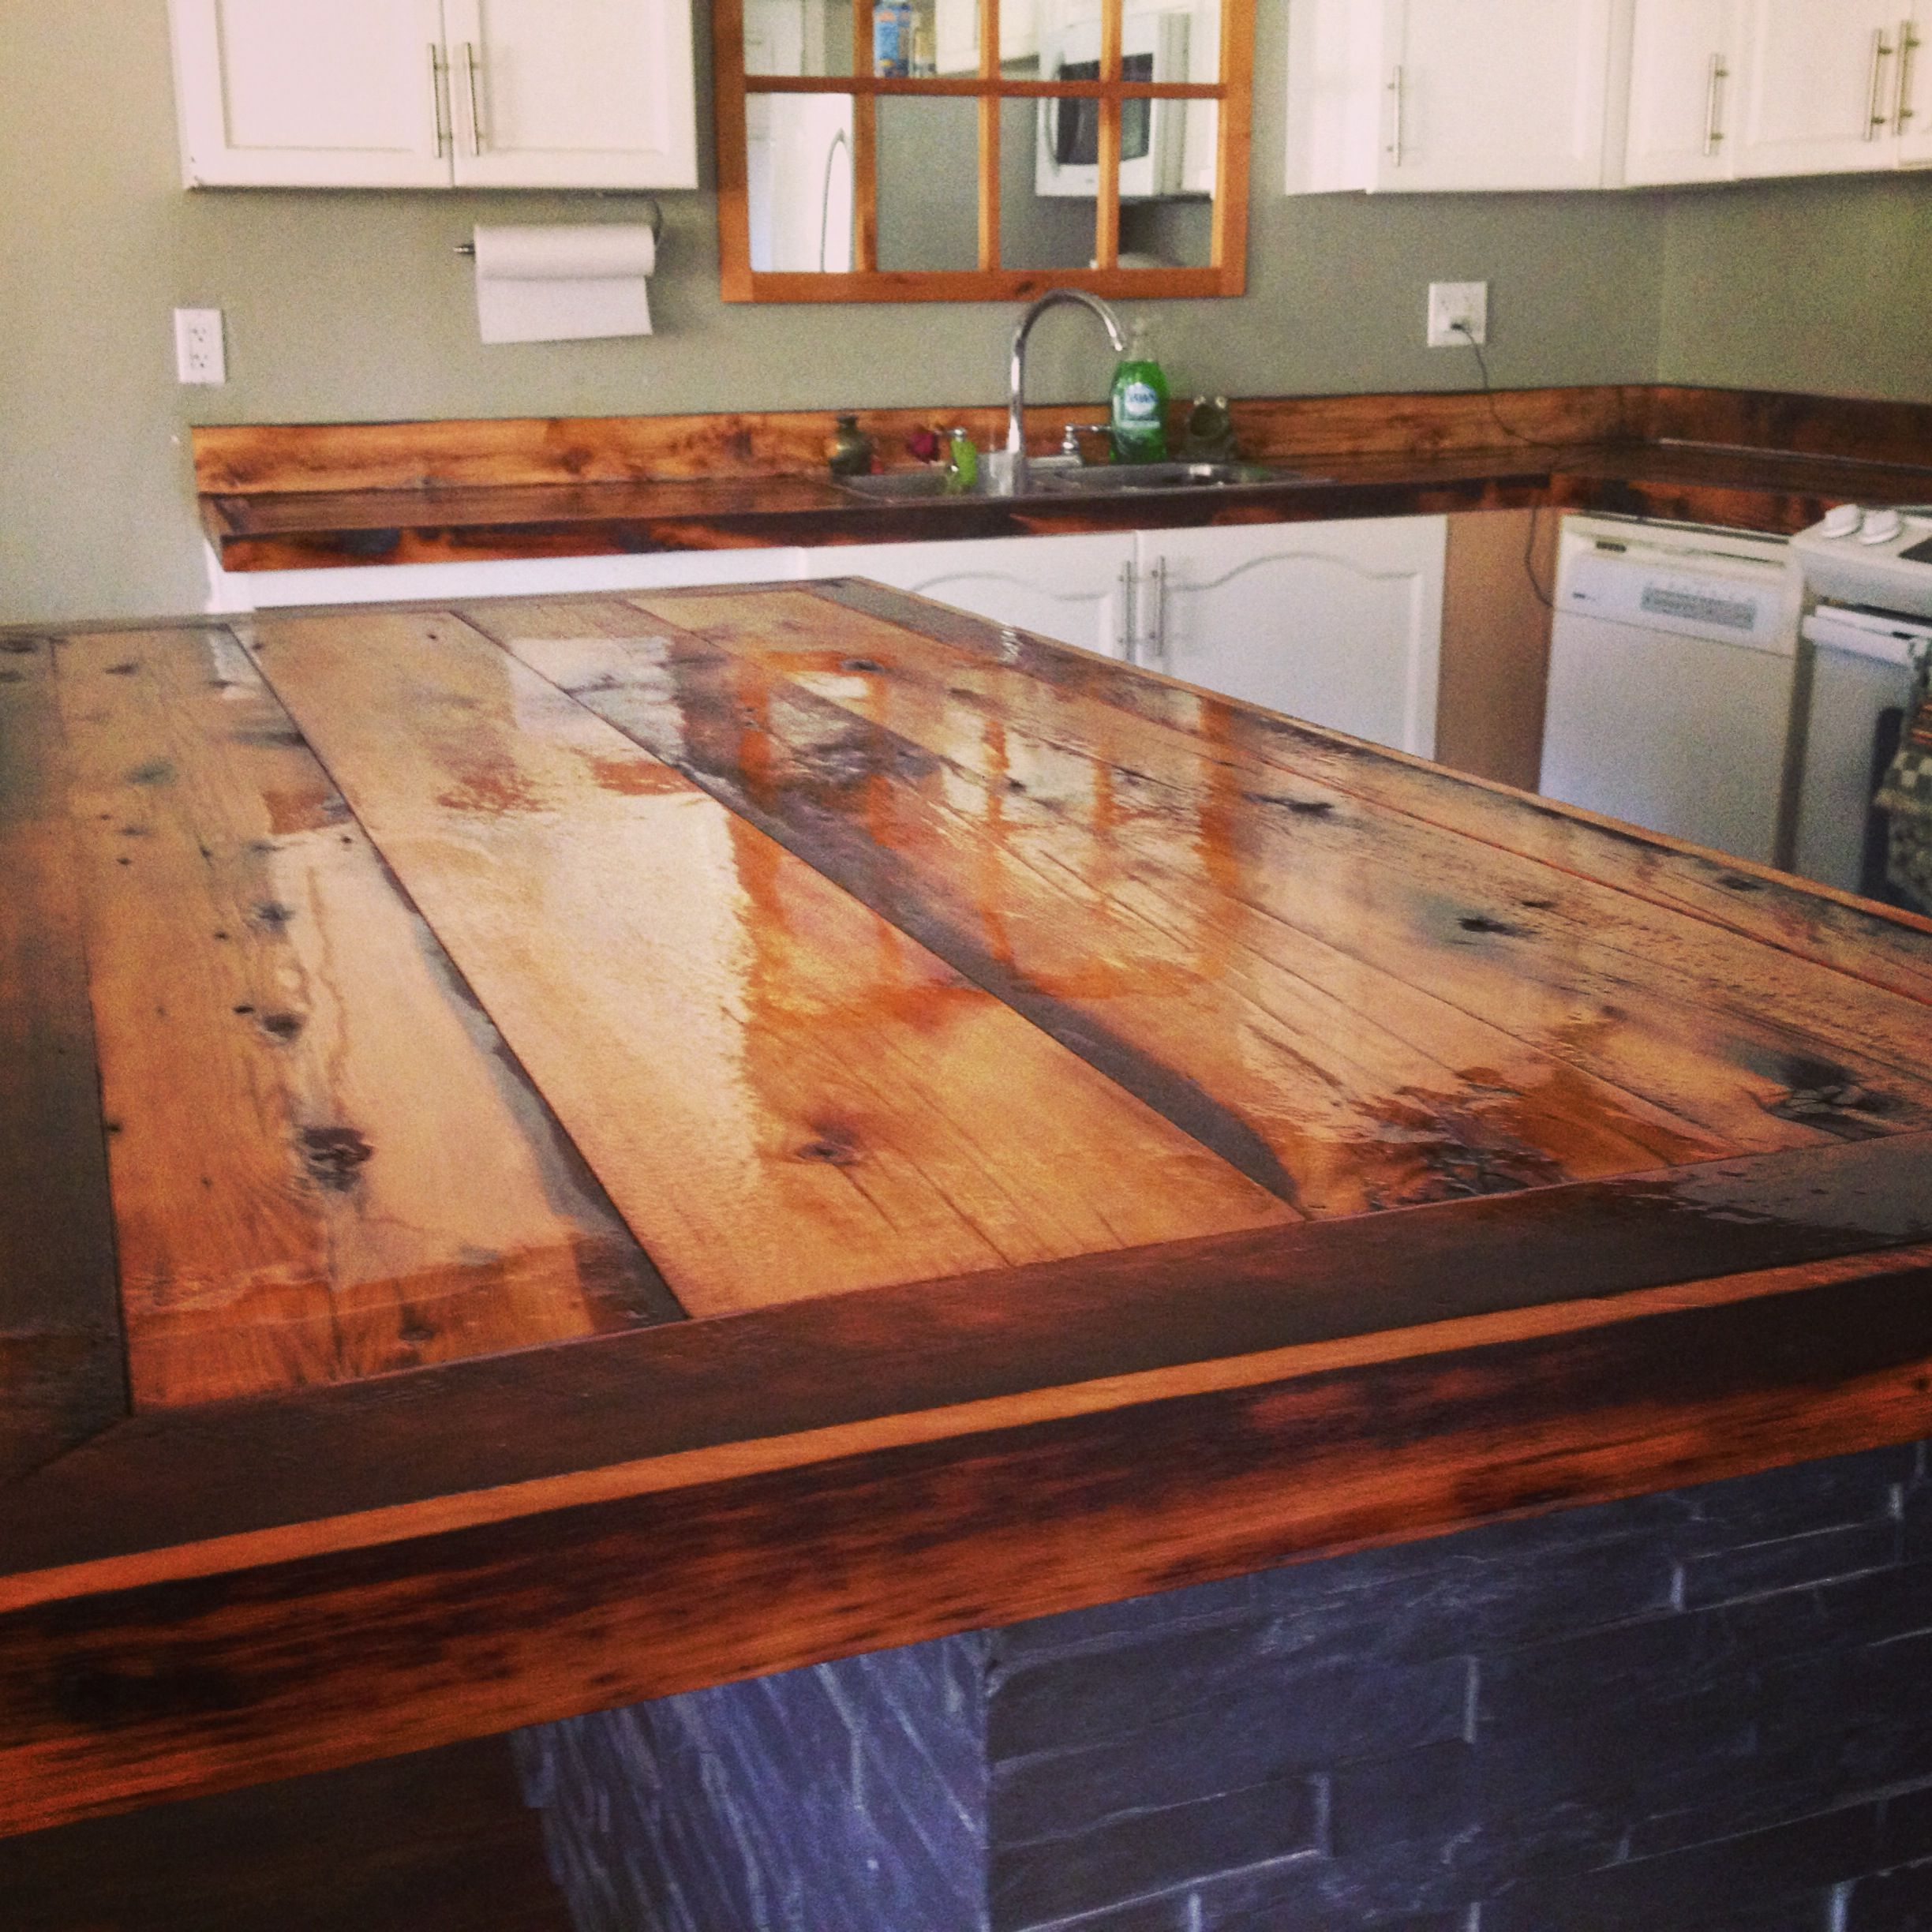 Diy butcher block countertops rustic diy custom butcher block desk top made from reclaimed - Diy faux butcher block countertops ...